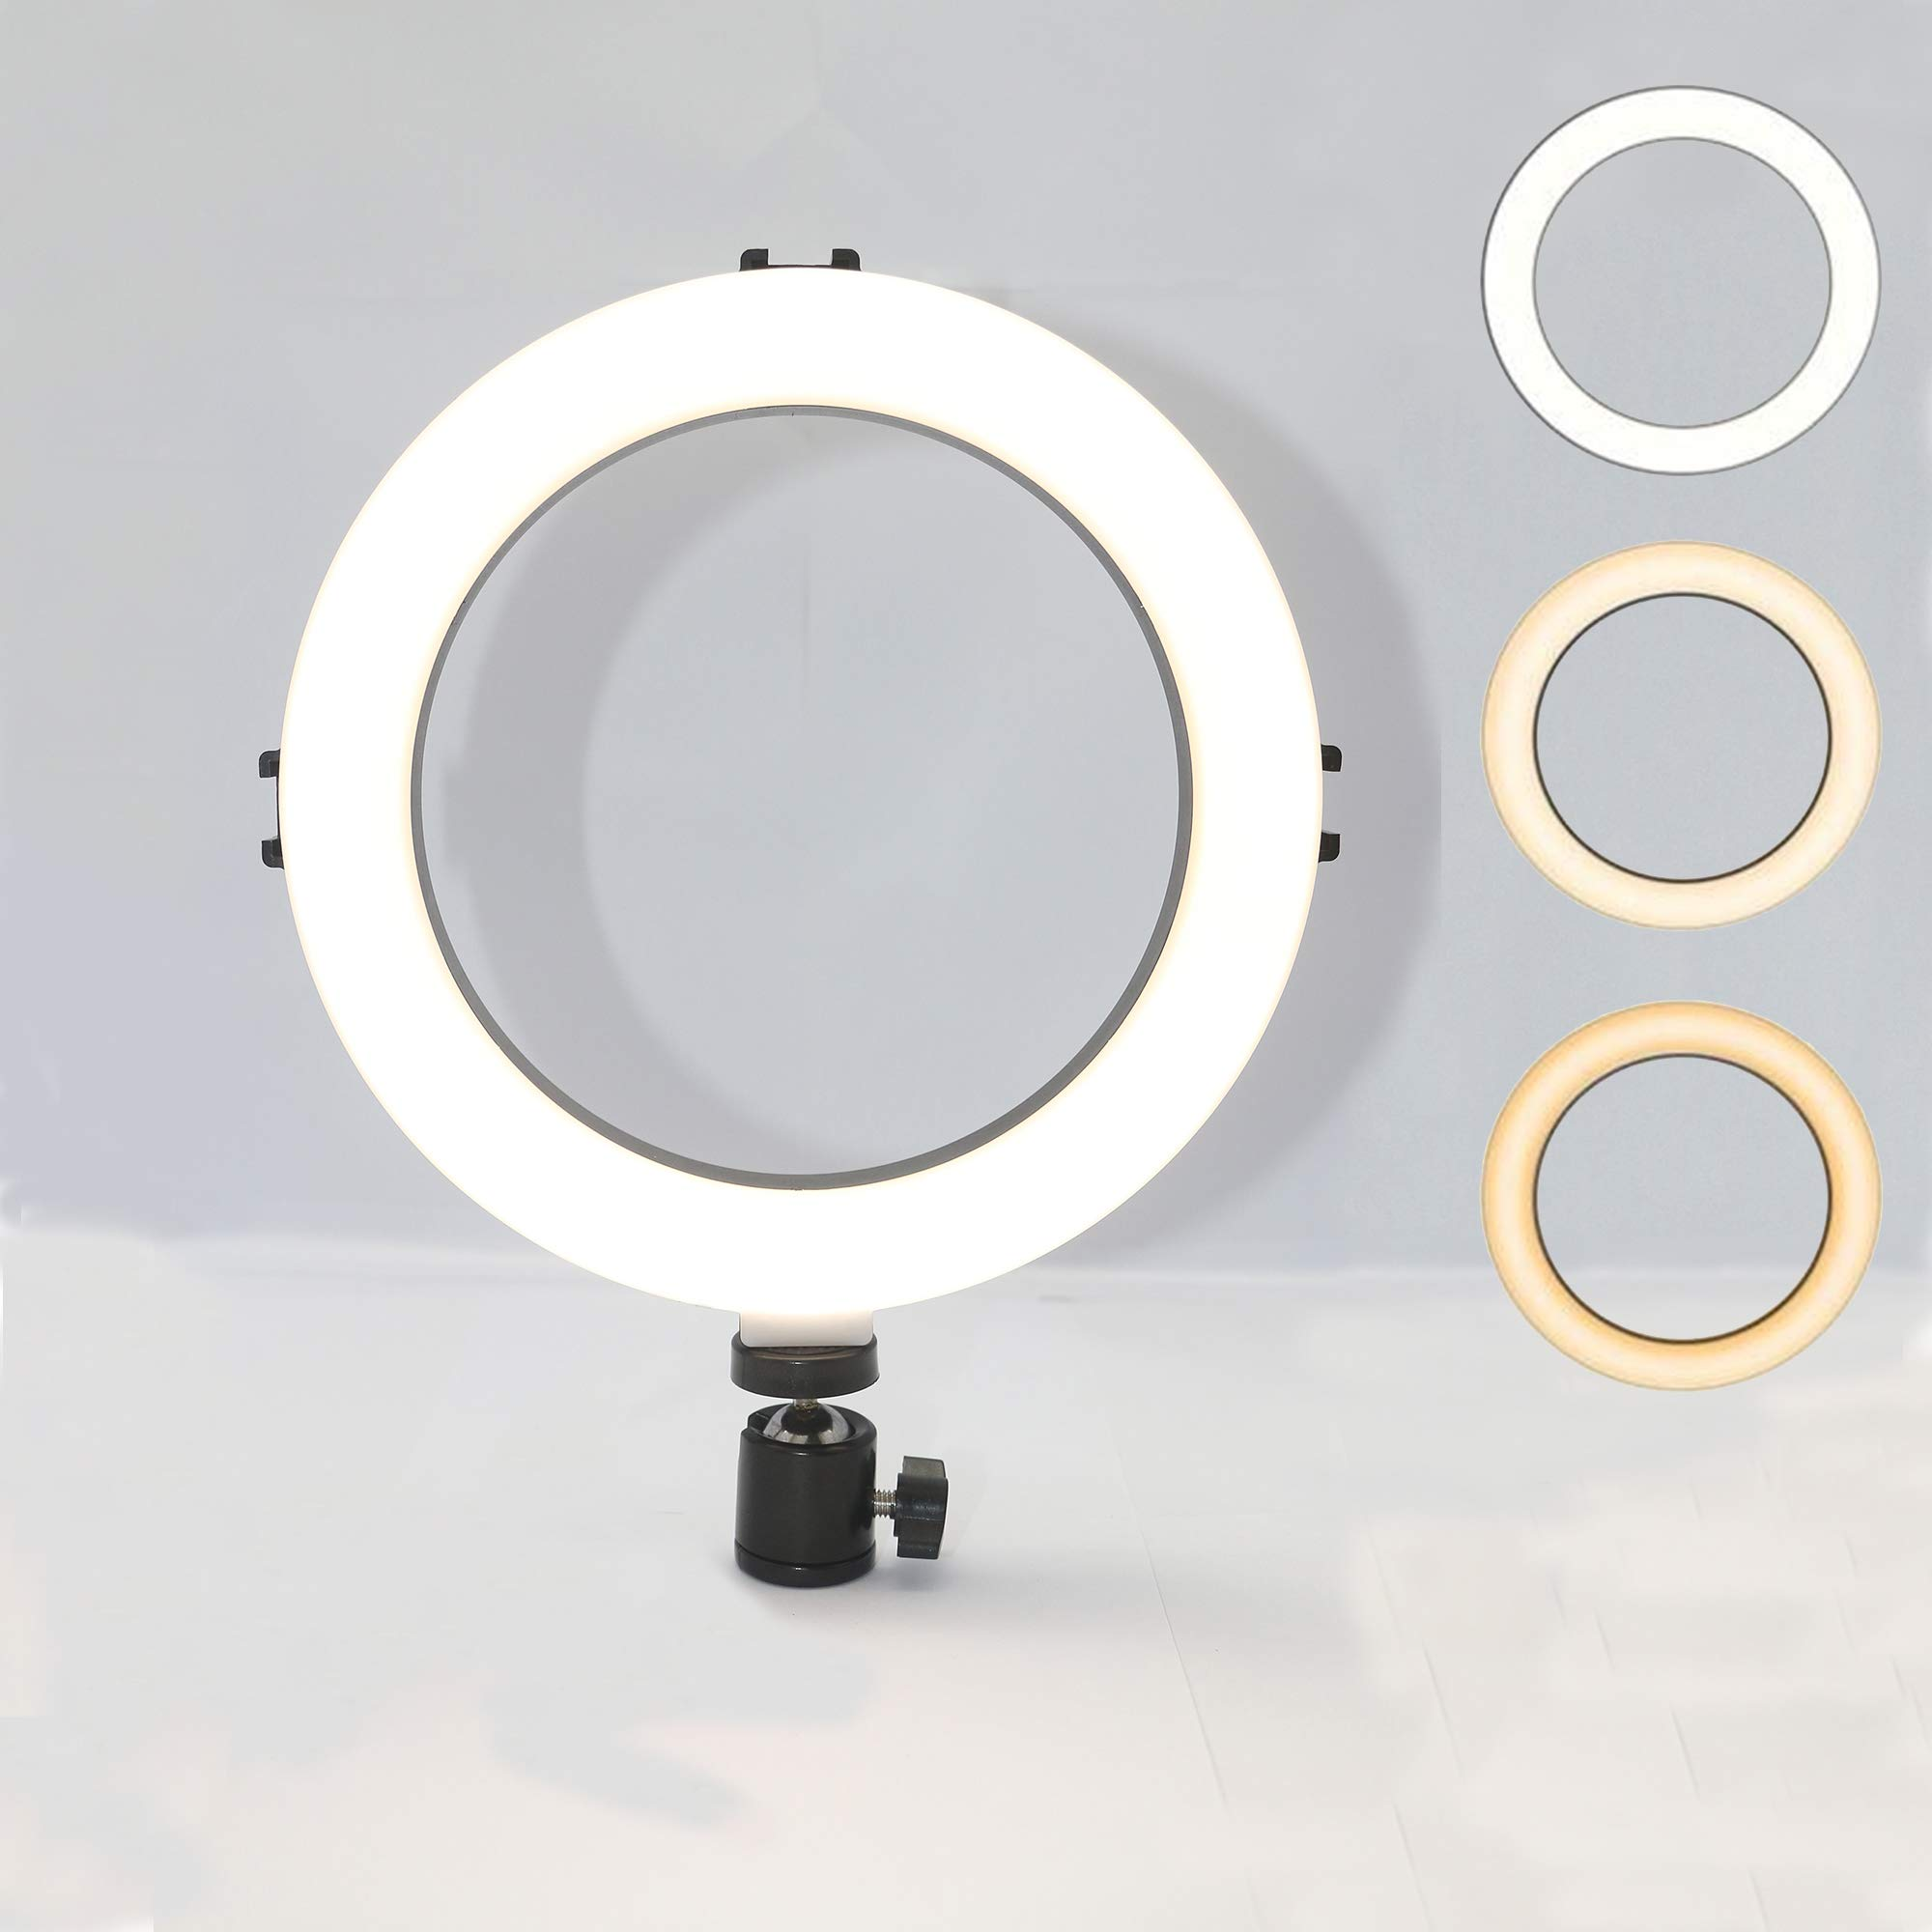 8'' LED Selfie Ring Light for Live Streaming/Makeup/YouTube Video,Dimmable Beauty Ringlight for Photography Lighting with 3 Light Modes & 10 Brightness Level